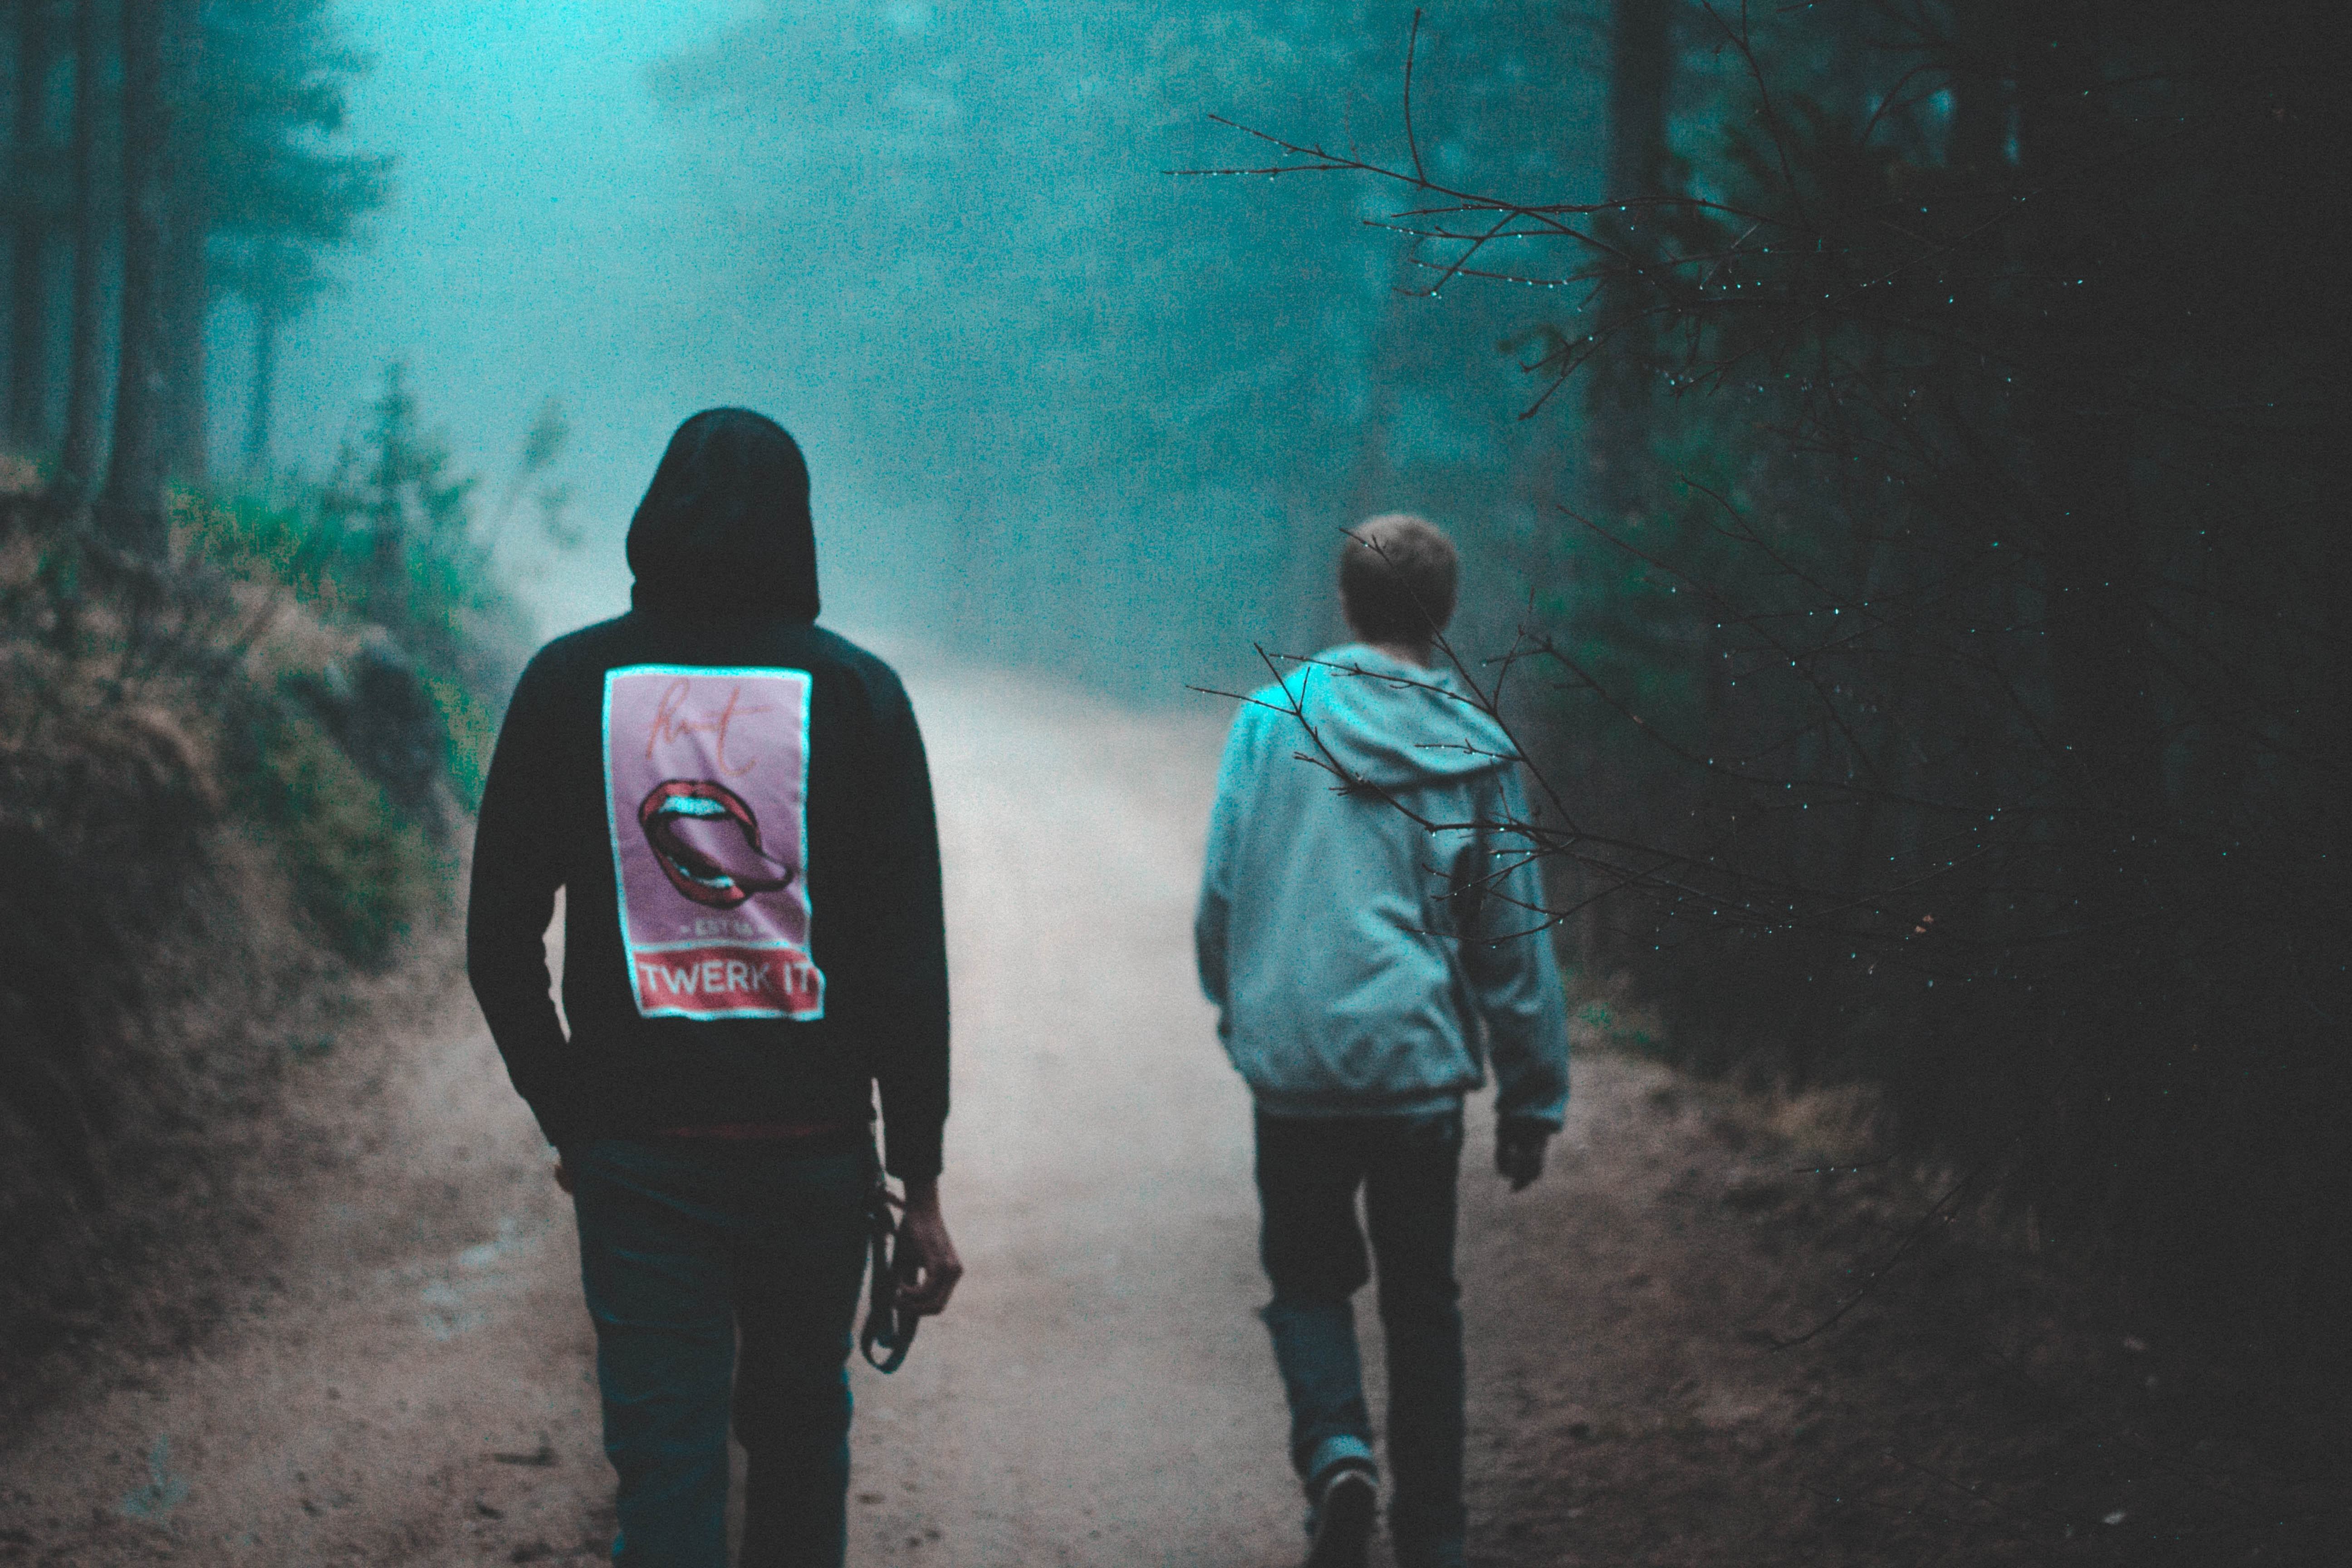 Young friends in graphic hoodies walk through foggy woods